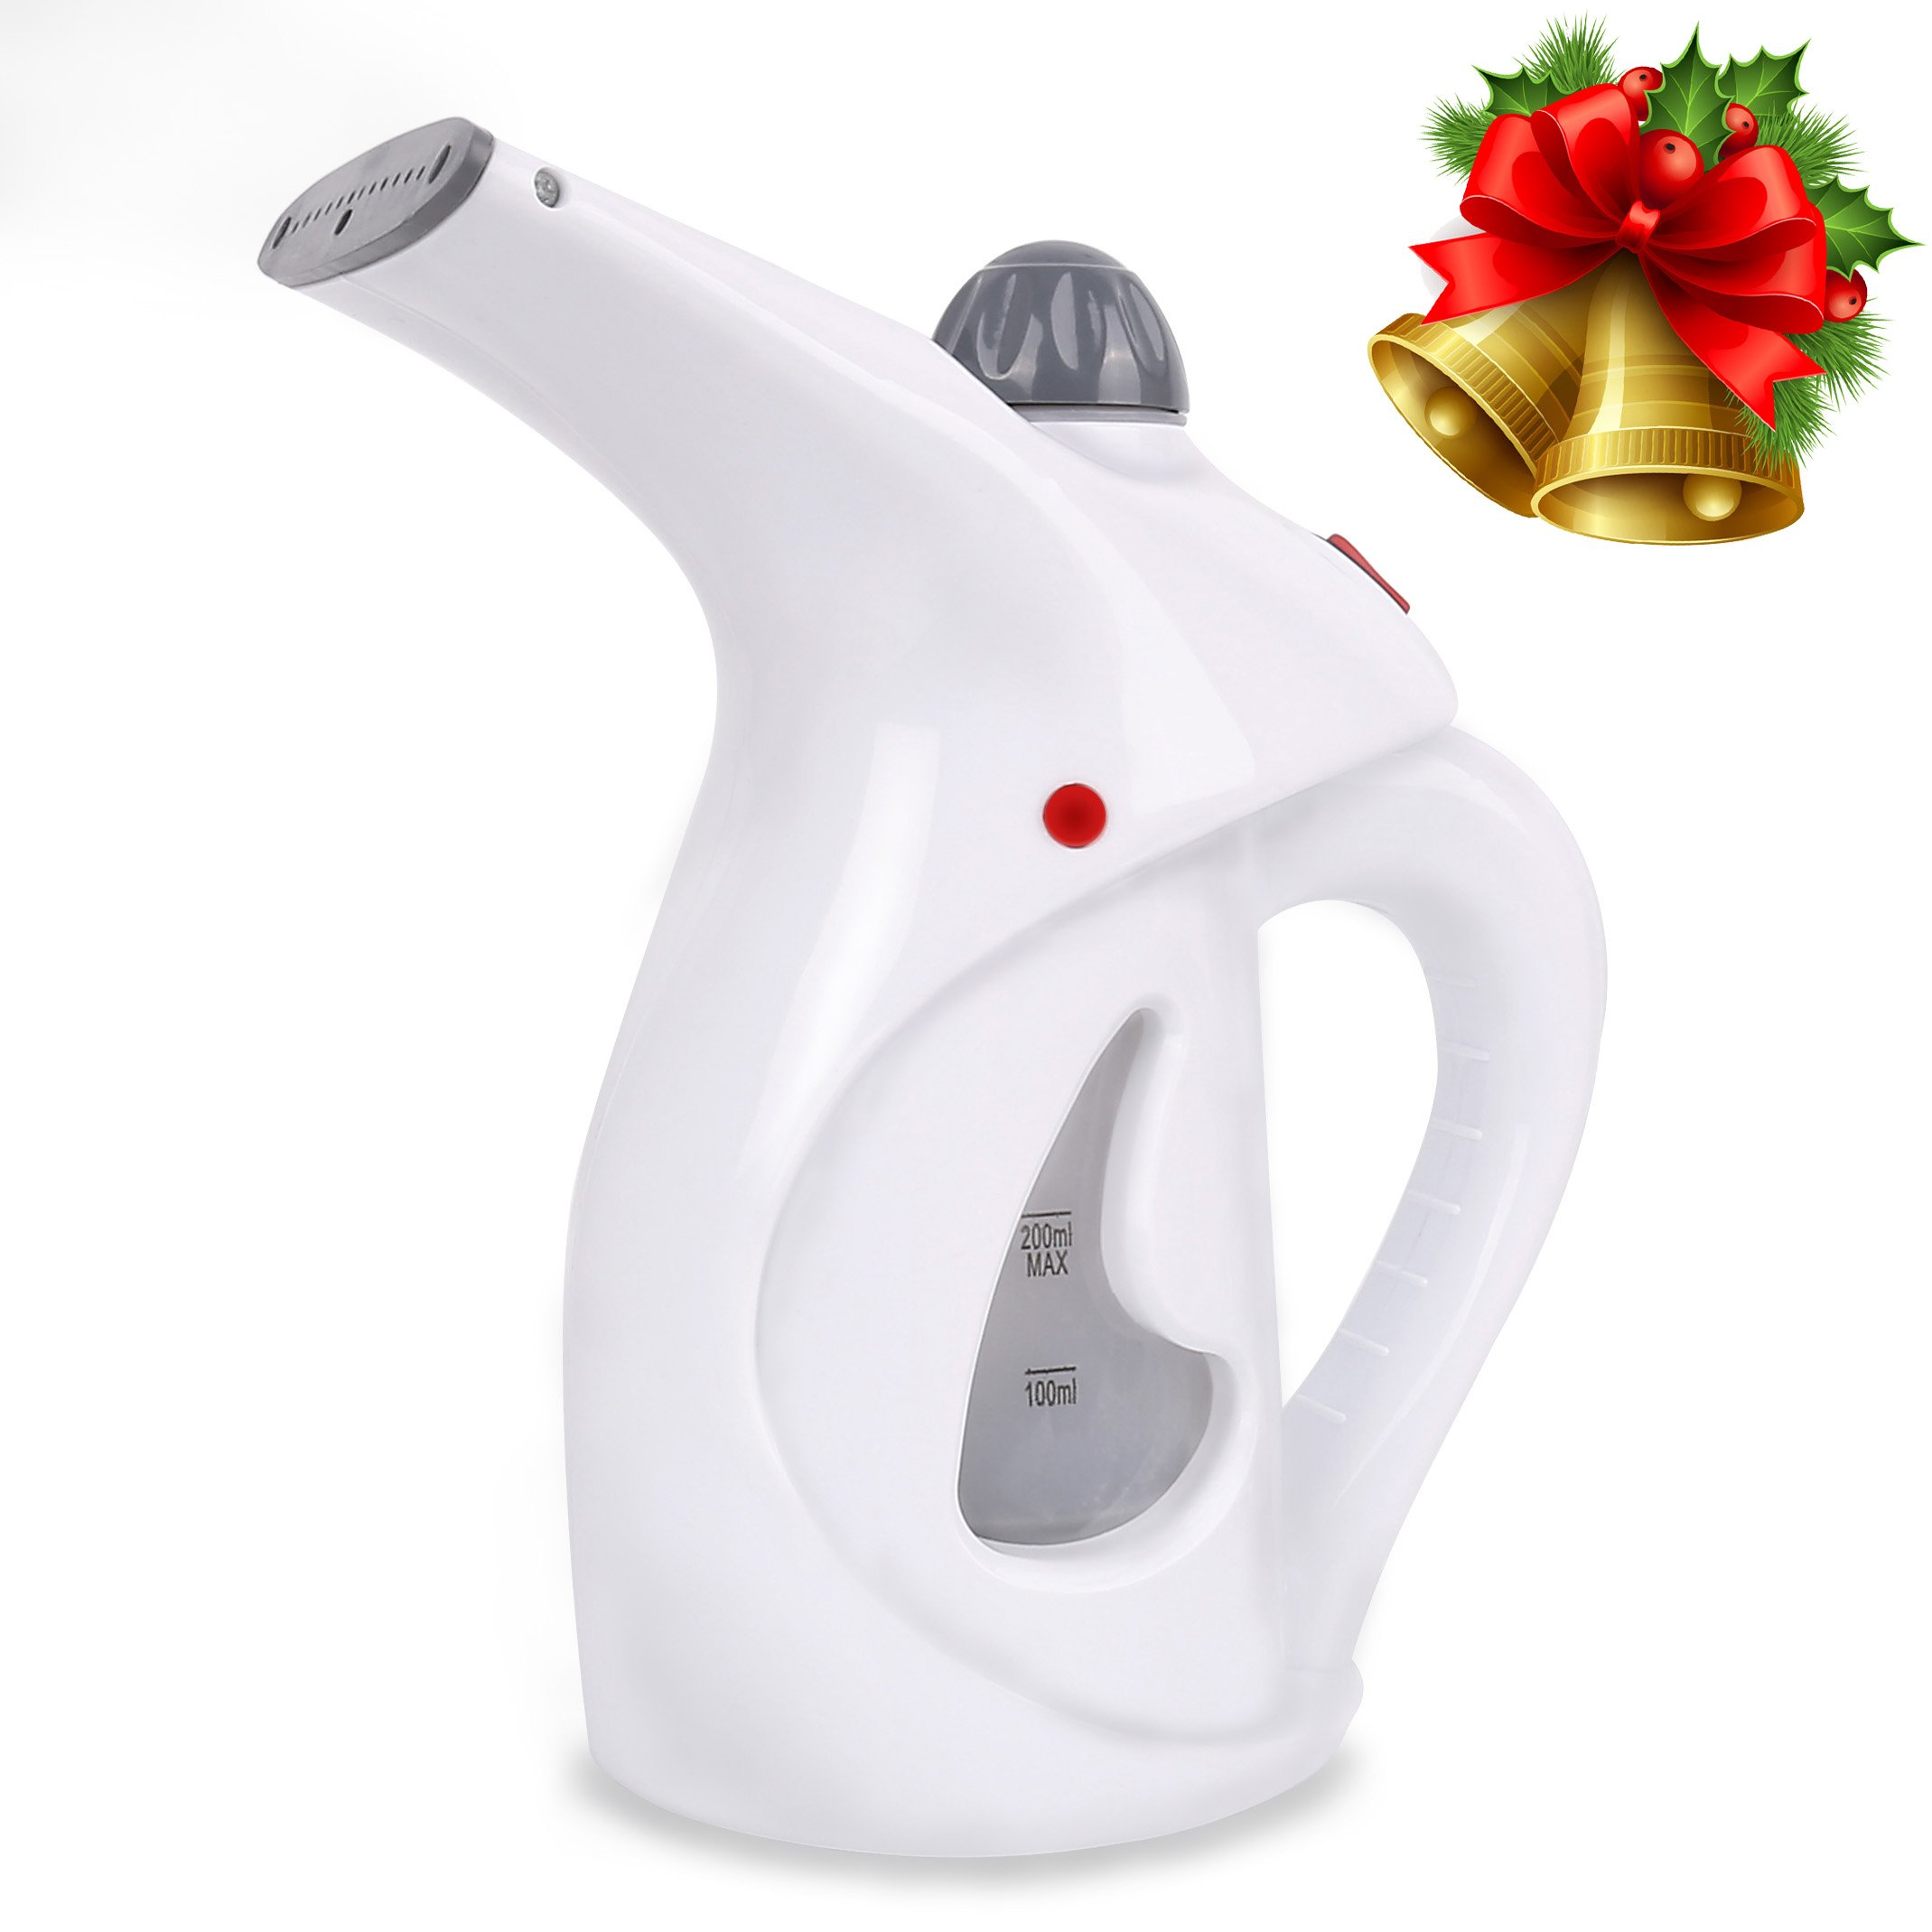 VANDORA Garment Steamer –Portable Multi-function Fabric Steamer - Handheld Powerful Steamer Perfect For Home and Travel (White)